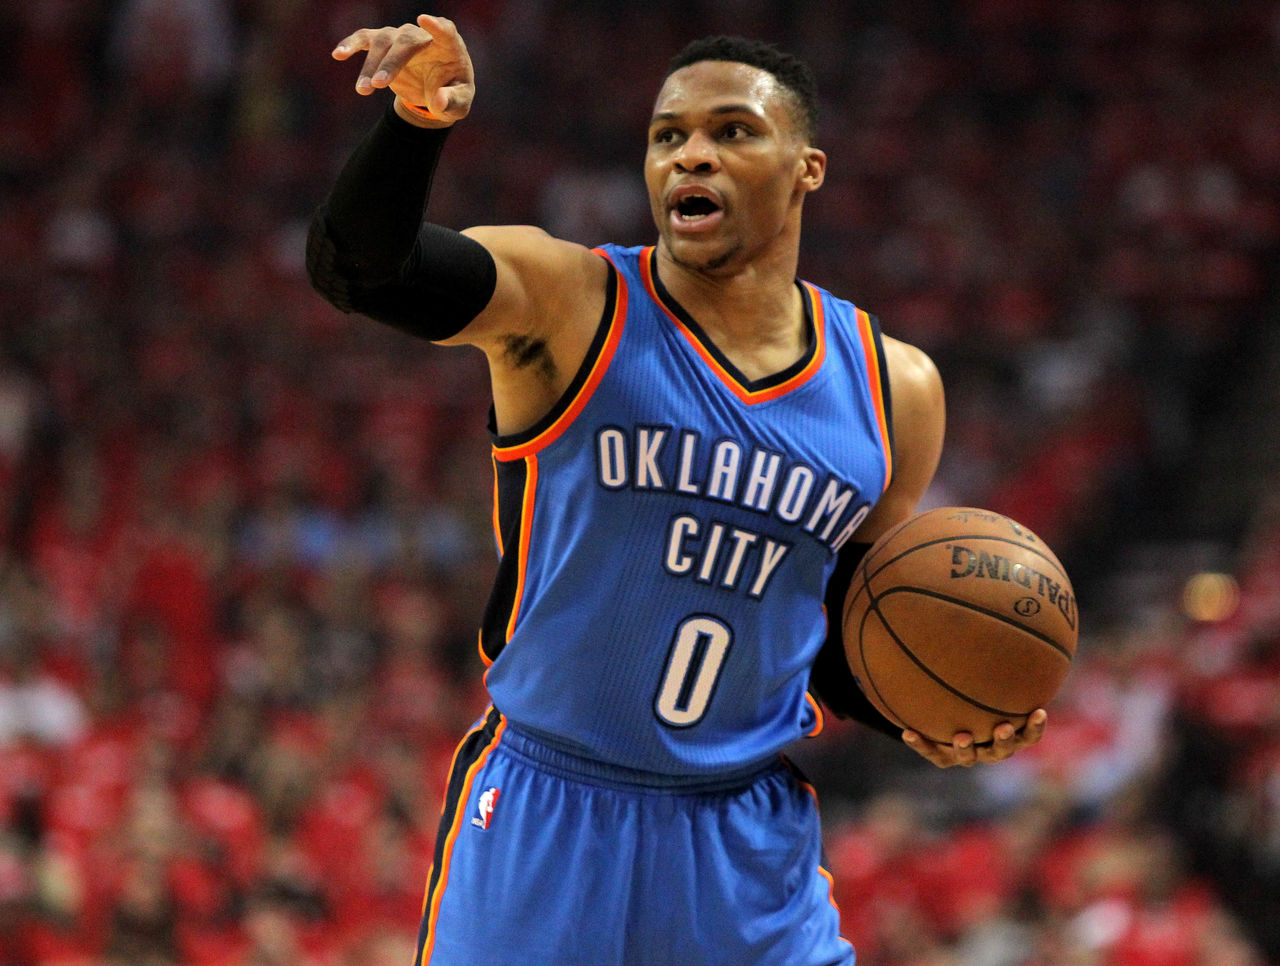 Cropped 2017 04 20t005210z 1810519278 nocid rtrmadp 3 nba playoffs oklahoma city thunder at houston rockets